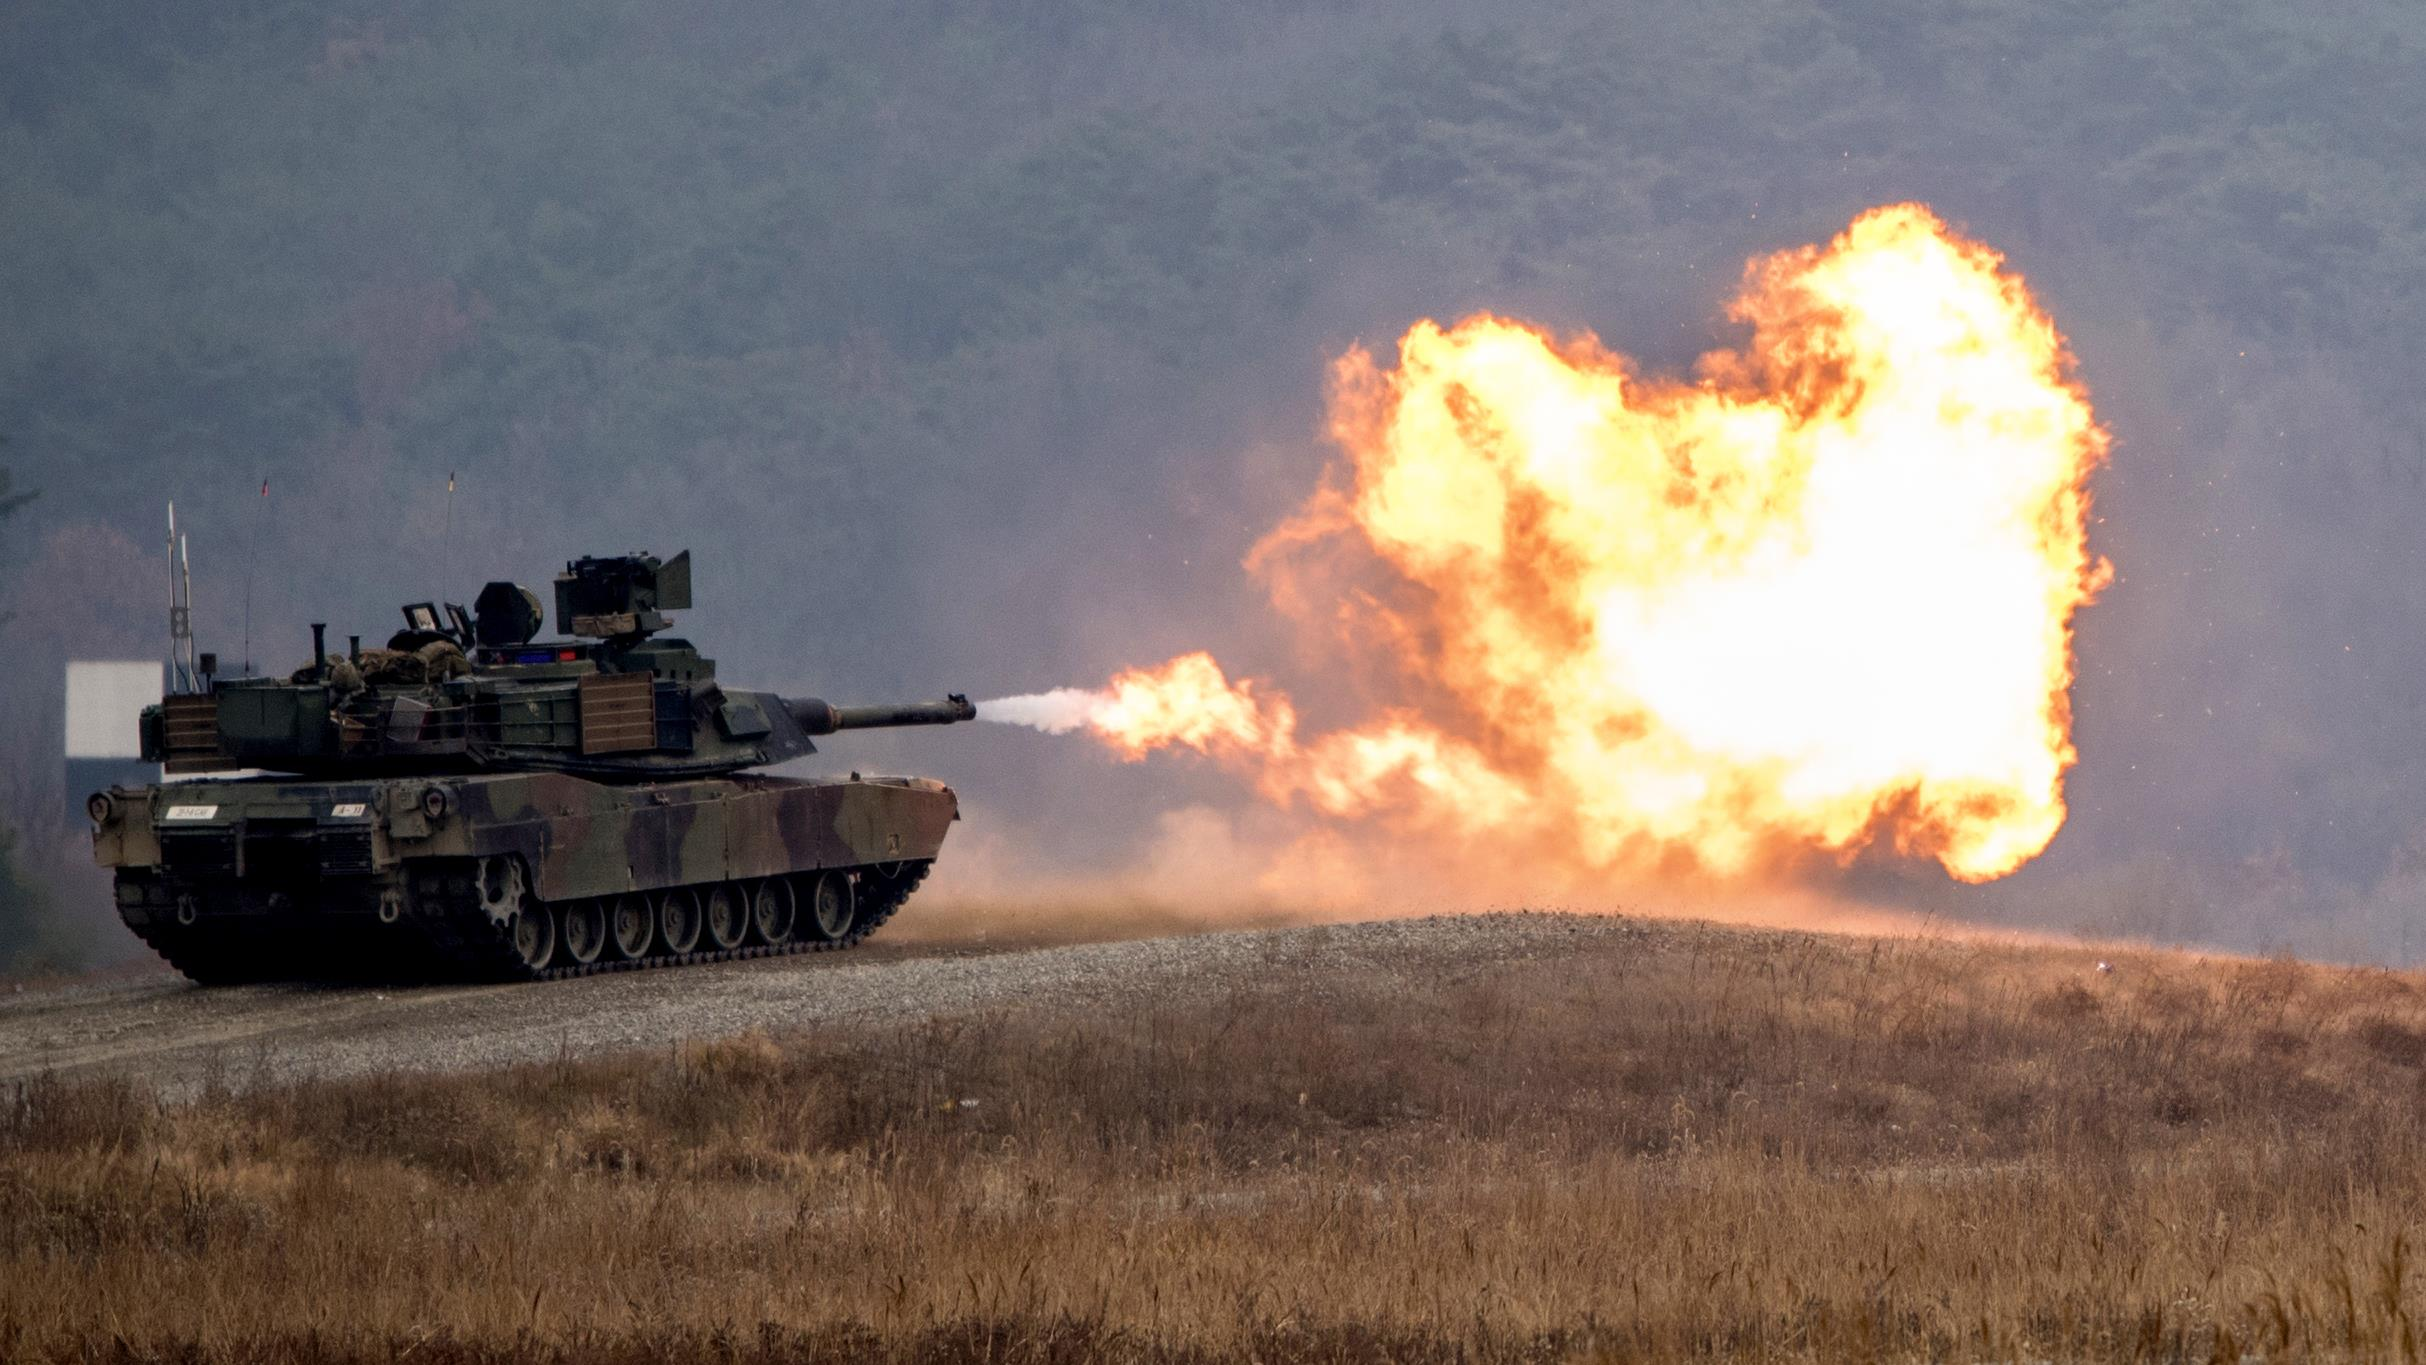 Soldiers fire the main weapon of an M1A2 Abrams tank during a gunnery qualification event at the Rodriguez live fire complex in South Korea, Nov. 28, 2017. The soldiers are assigned to the 1st Battalion, 8th Cavalry Regiment. Army photo by Sgt. Patrick Eakin